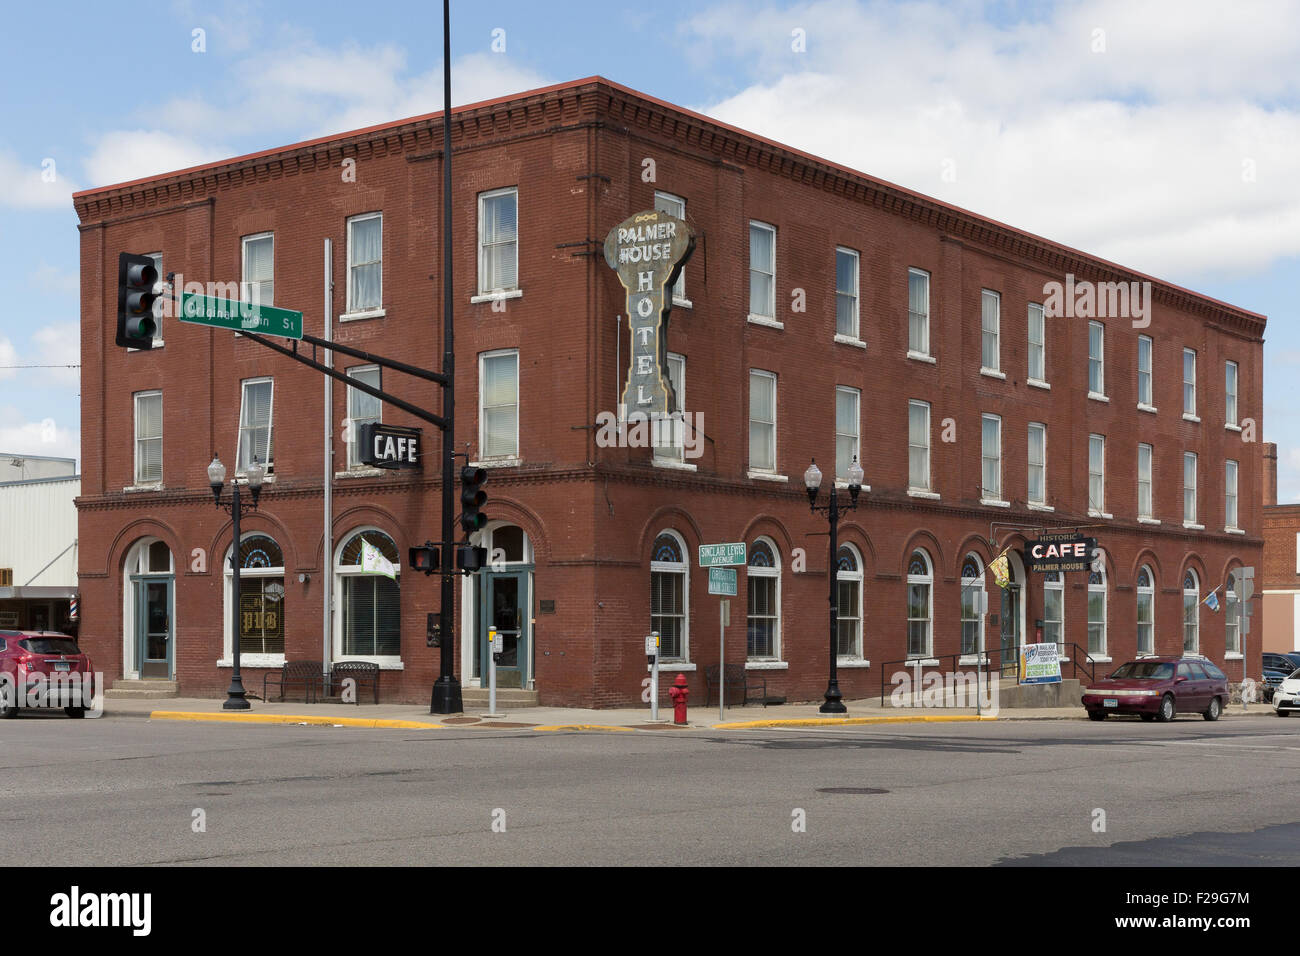 Historic Palmer House Hotel and Café in Sauk Centre, Minnesota - Stock Image